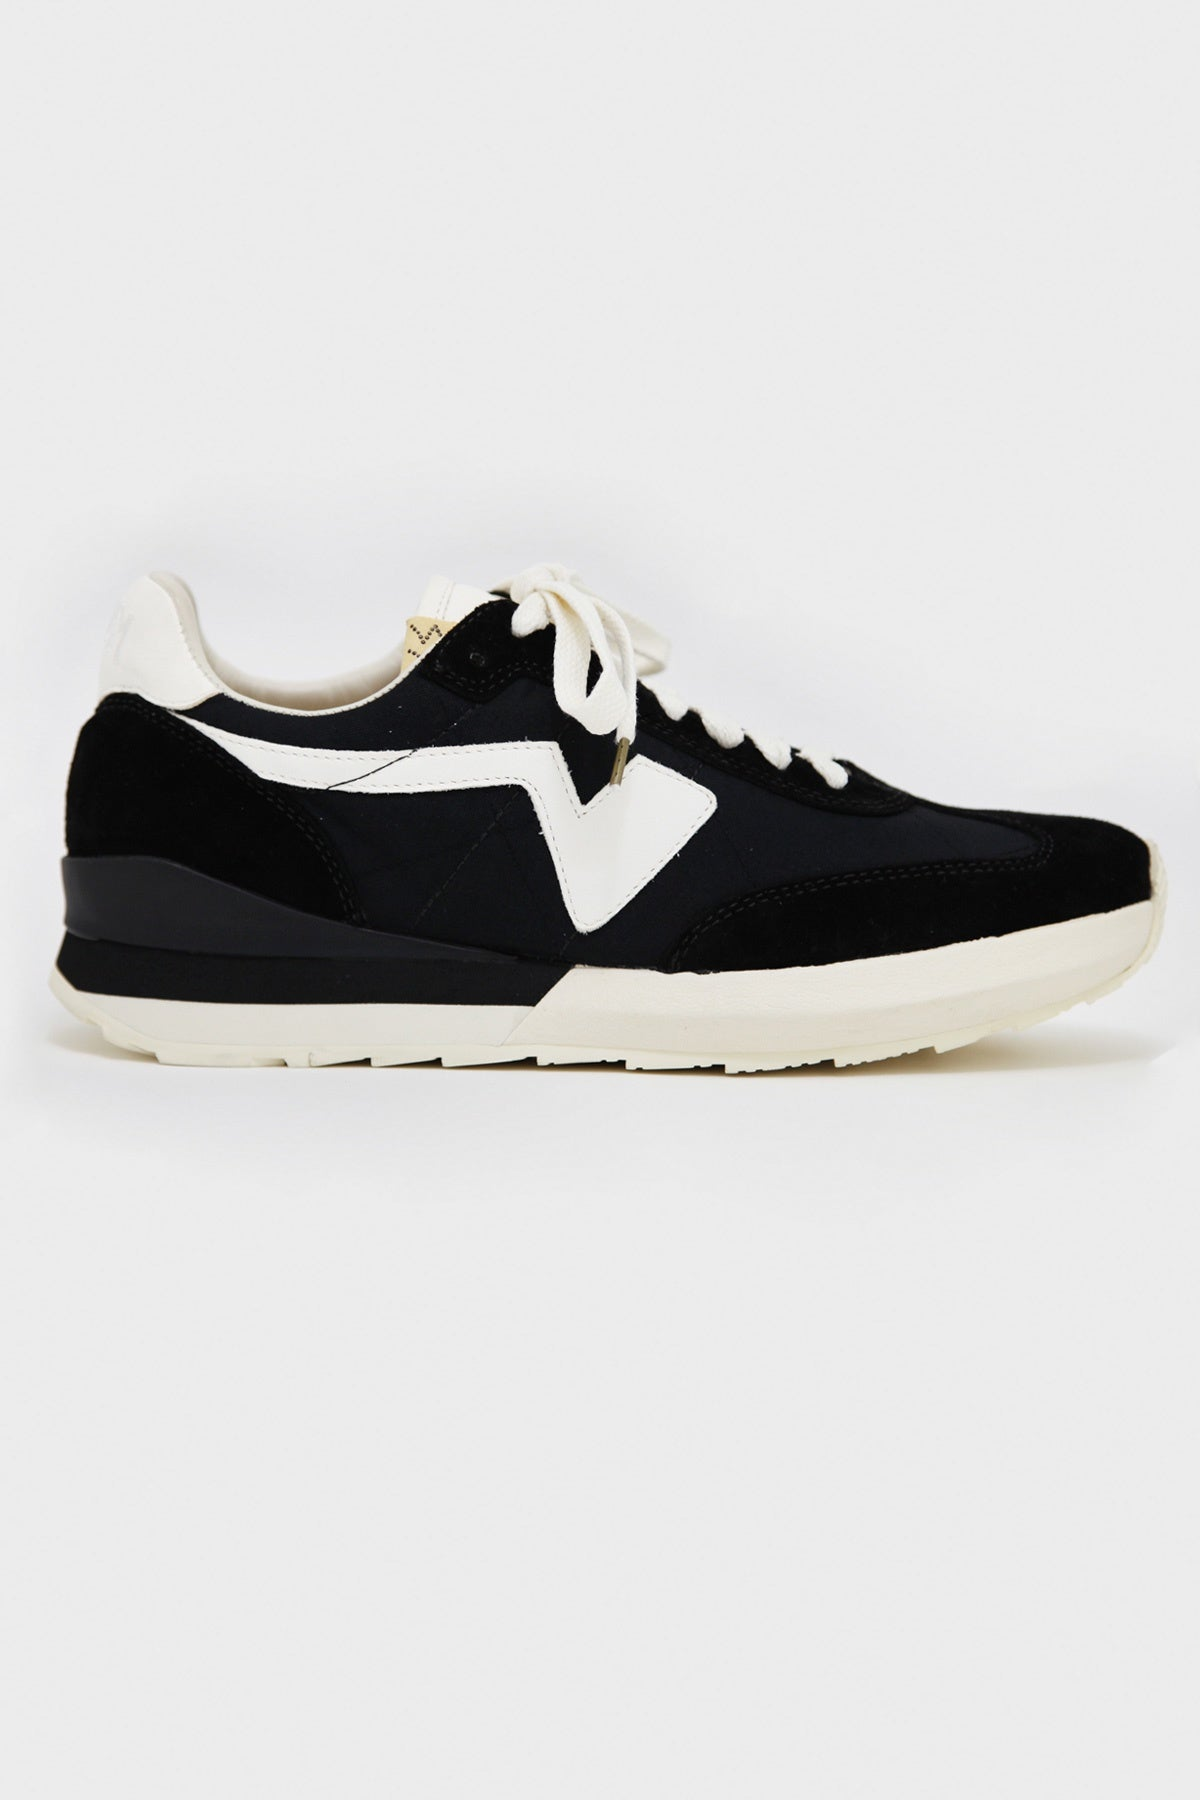 Visvim - FKT Runner - Black - Canoe Club